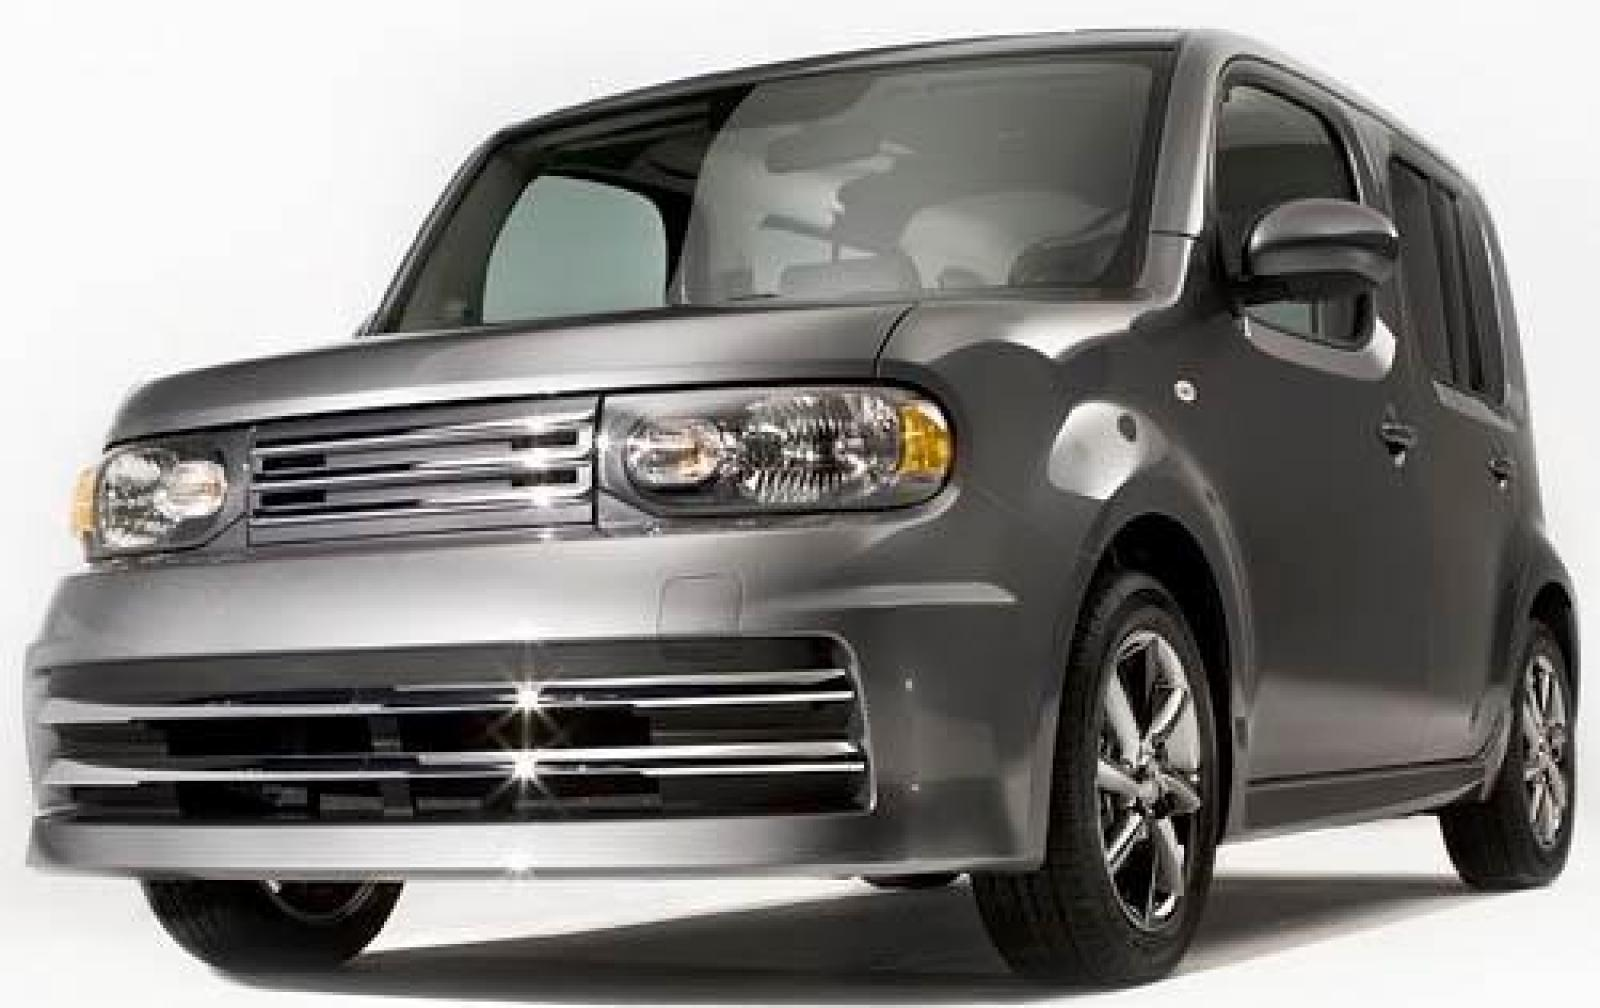 Nissan 2010 nissan cube : 2010 Nissan Cube - Information and photos - ZombieDrive